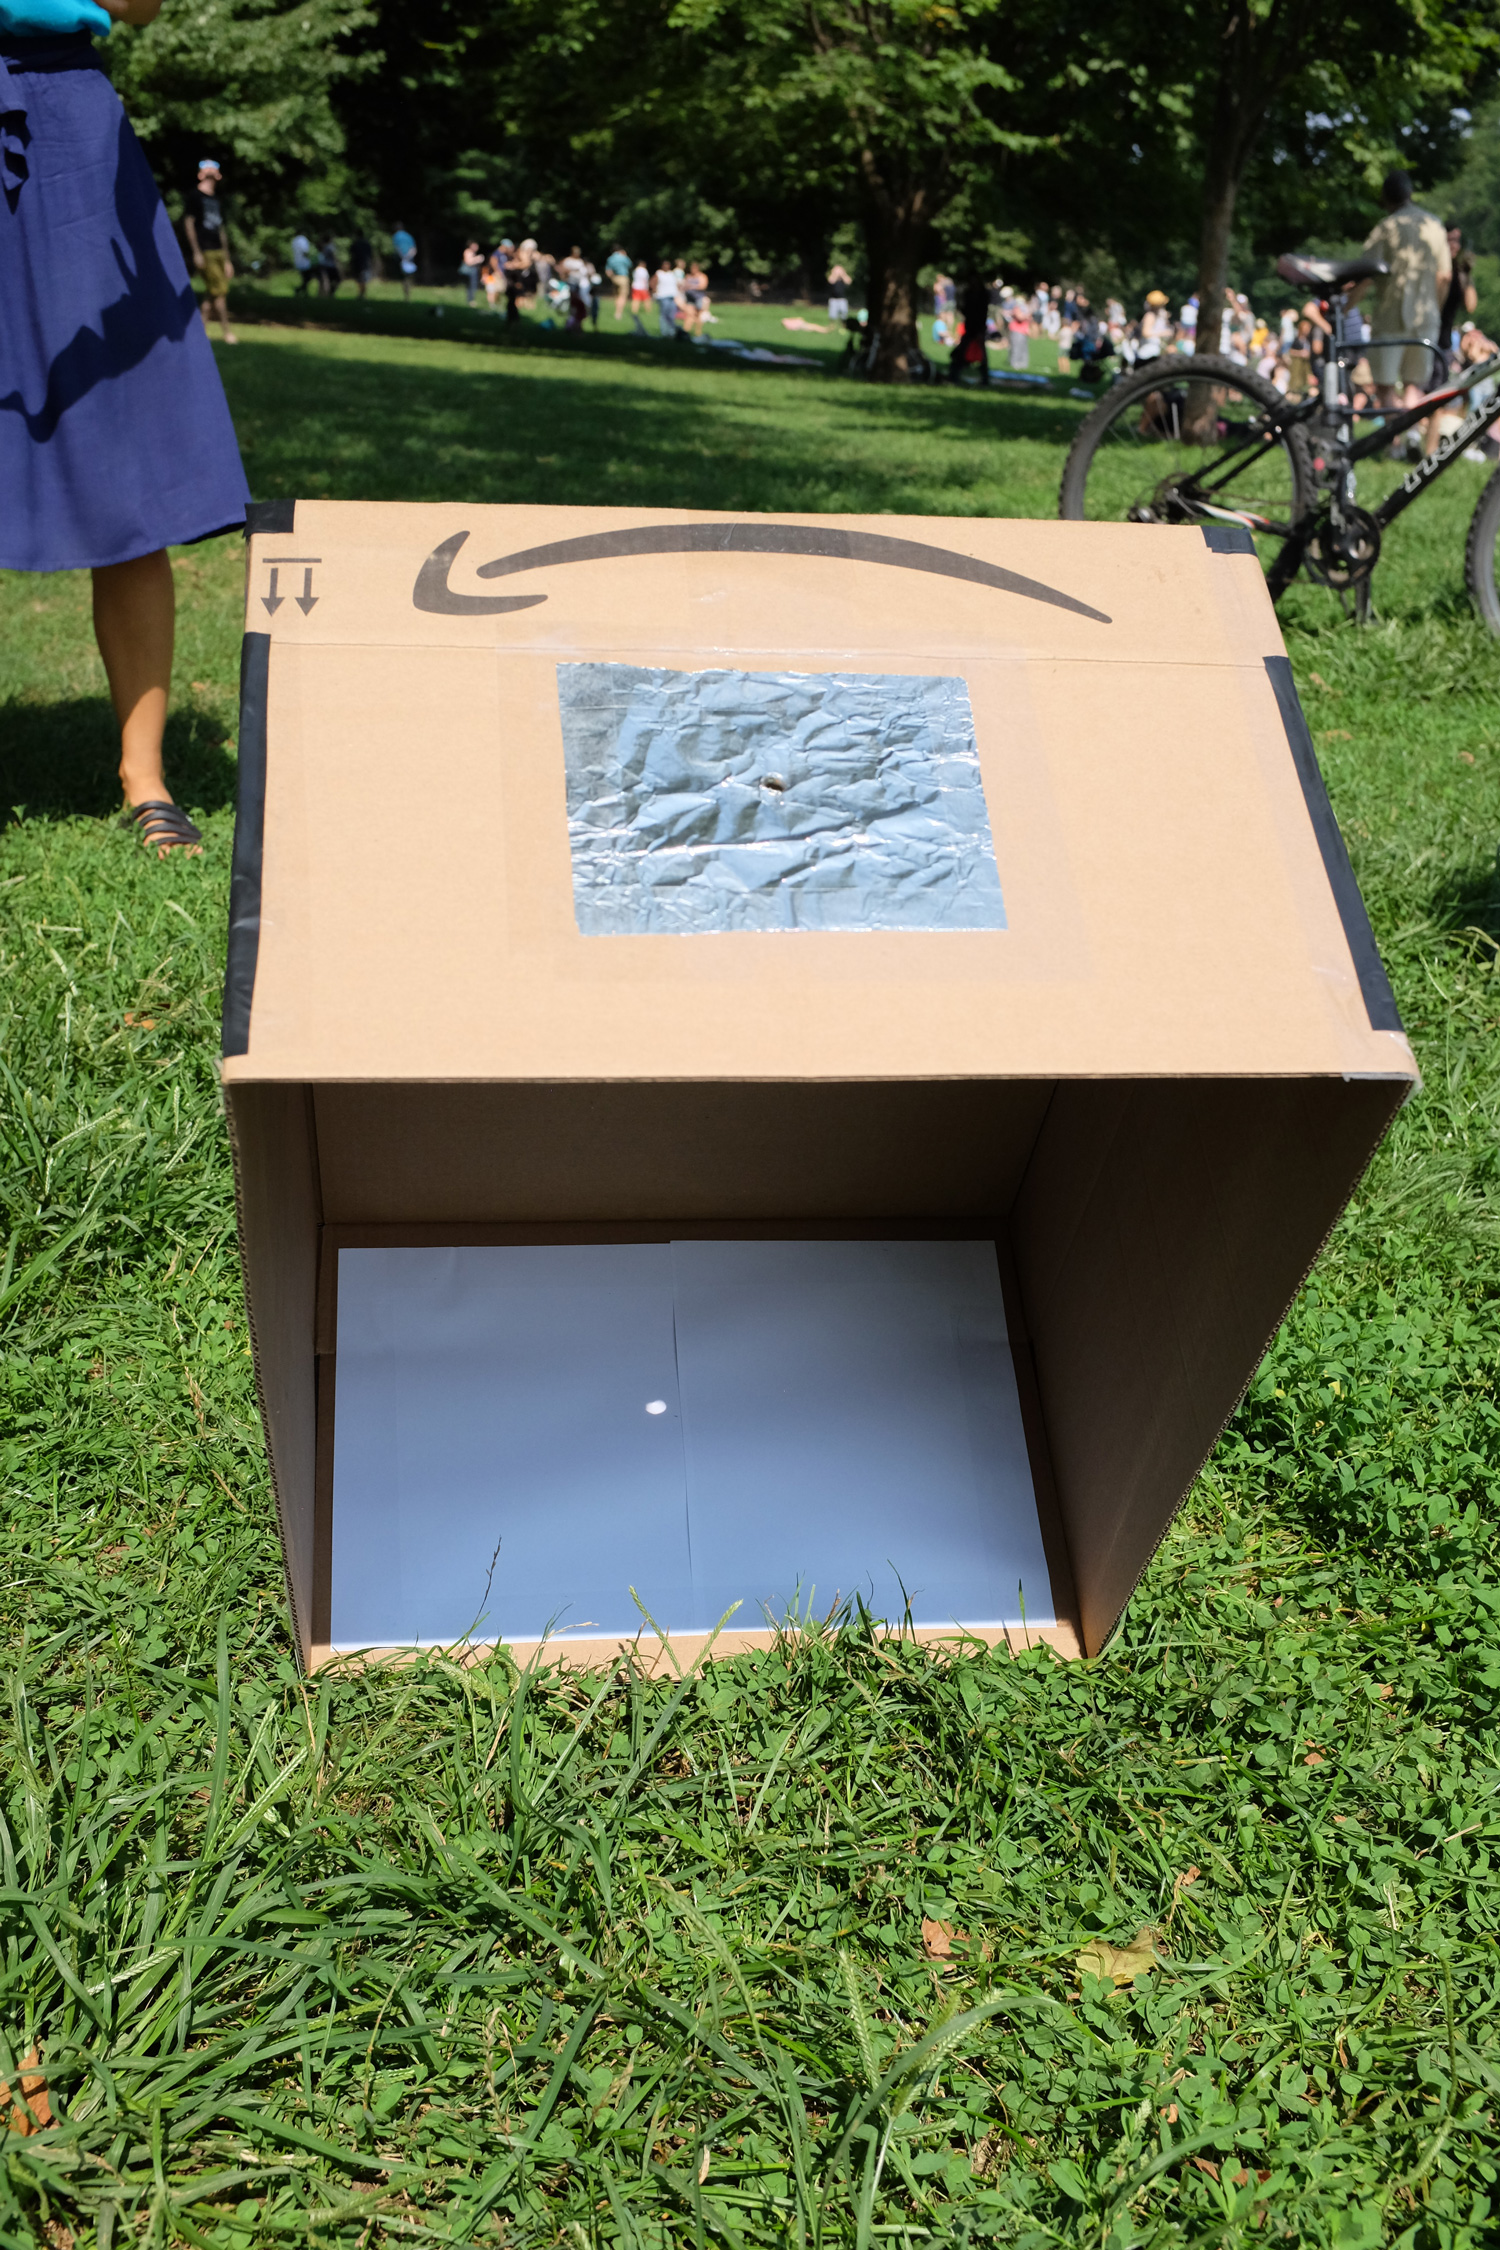 Large pinhole camera, #eclipse2017